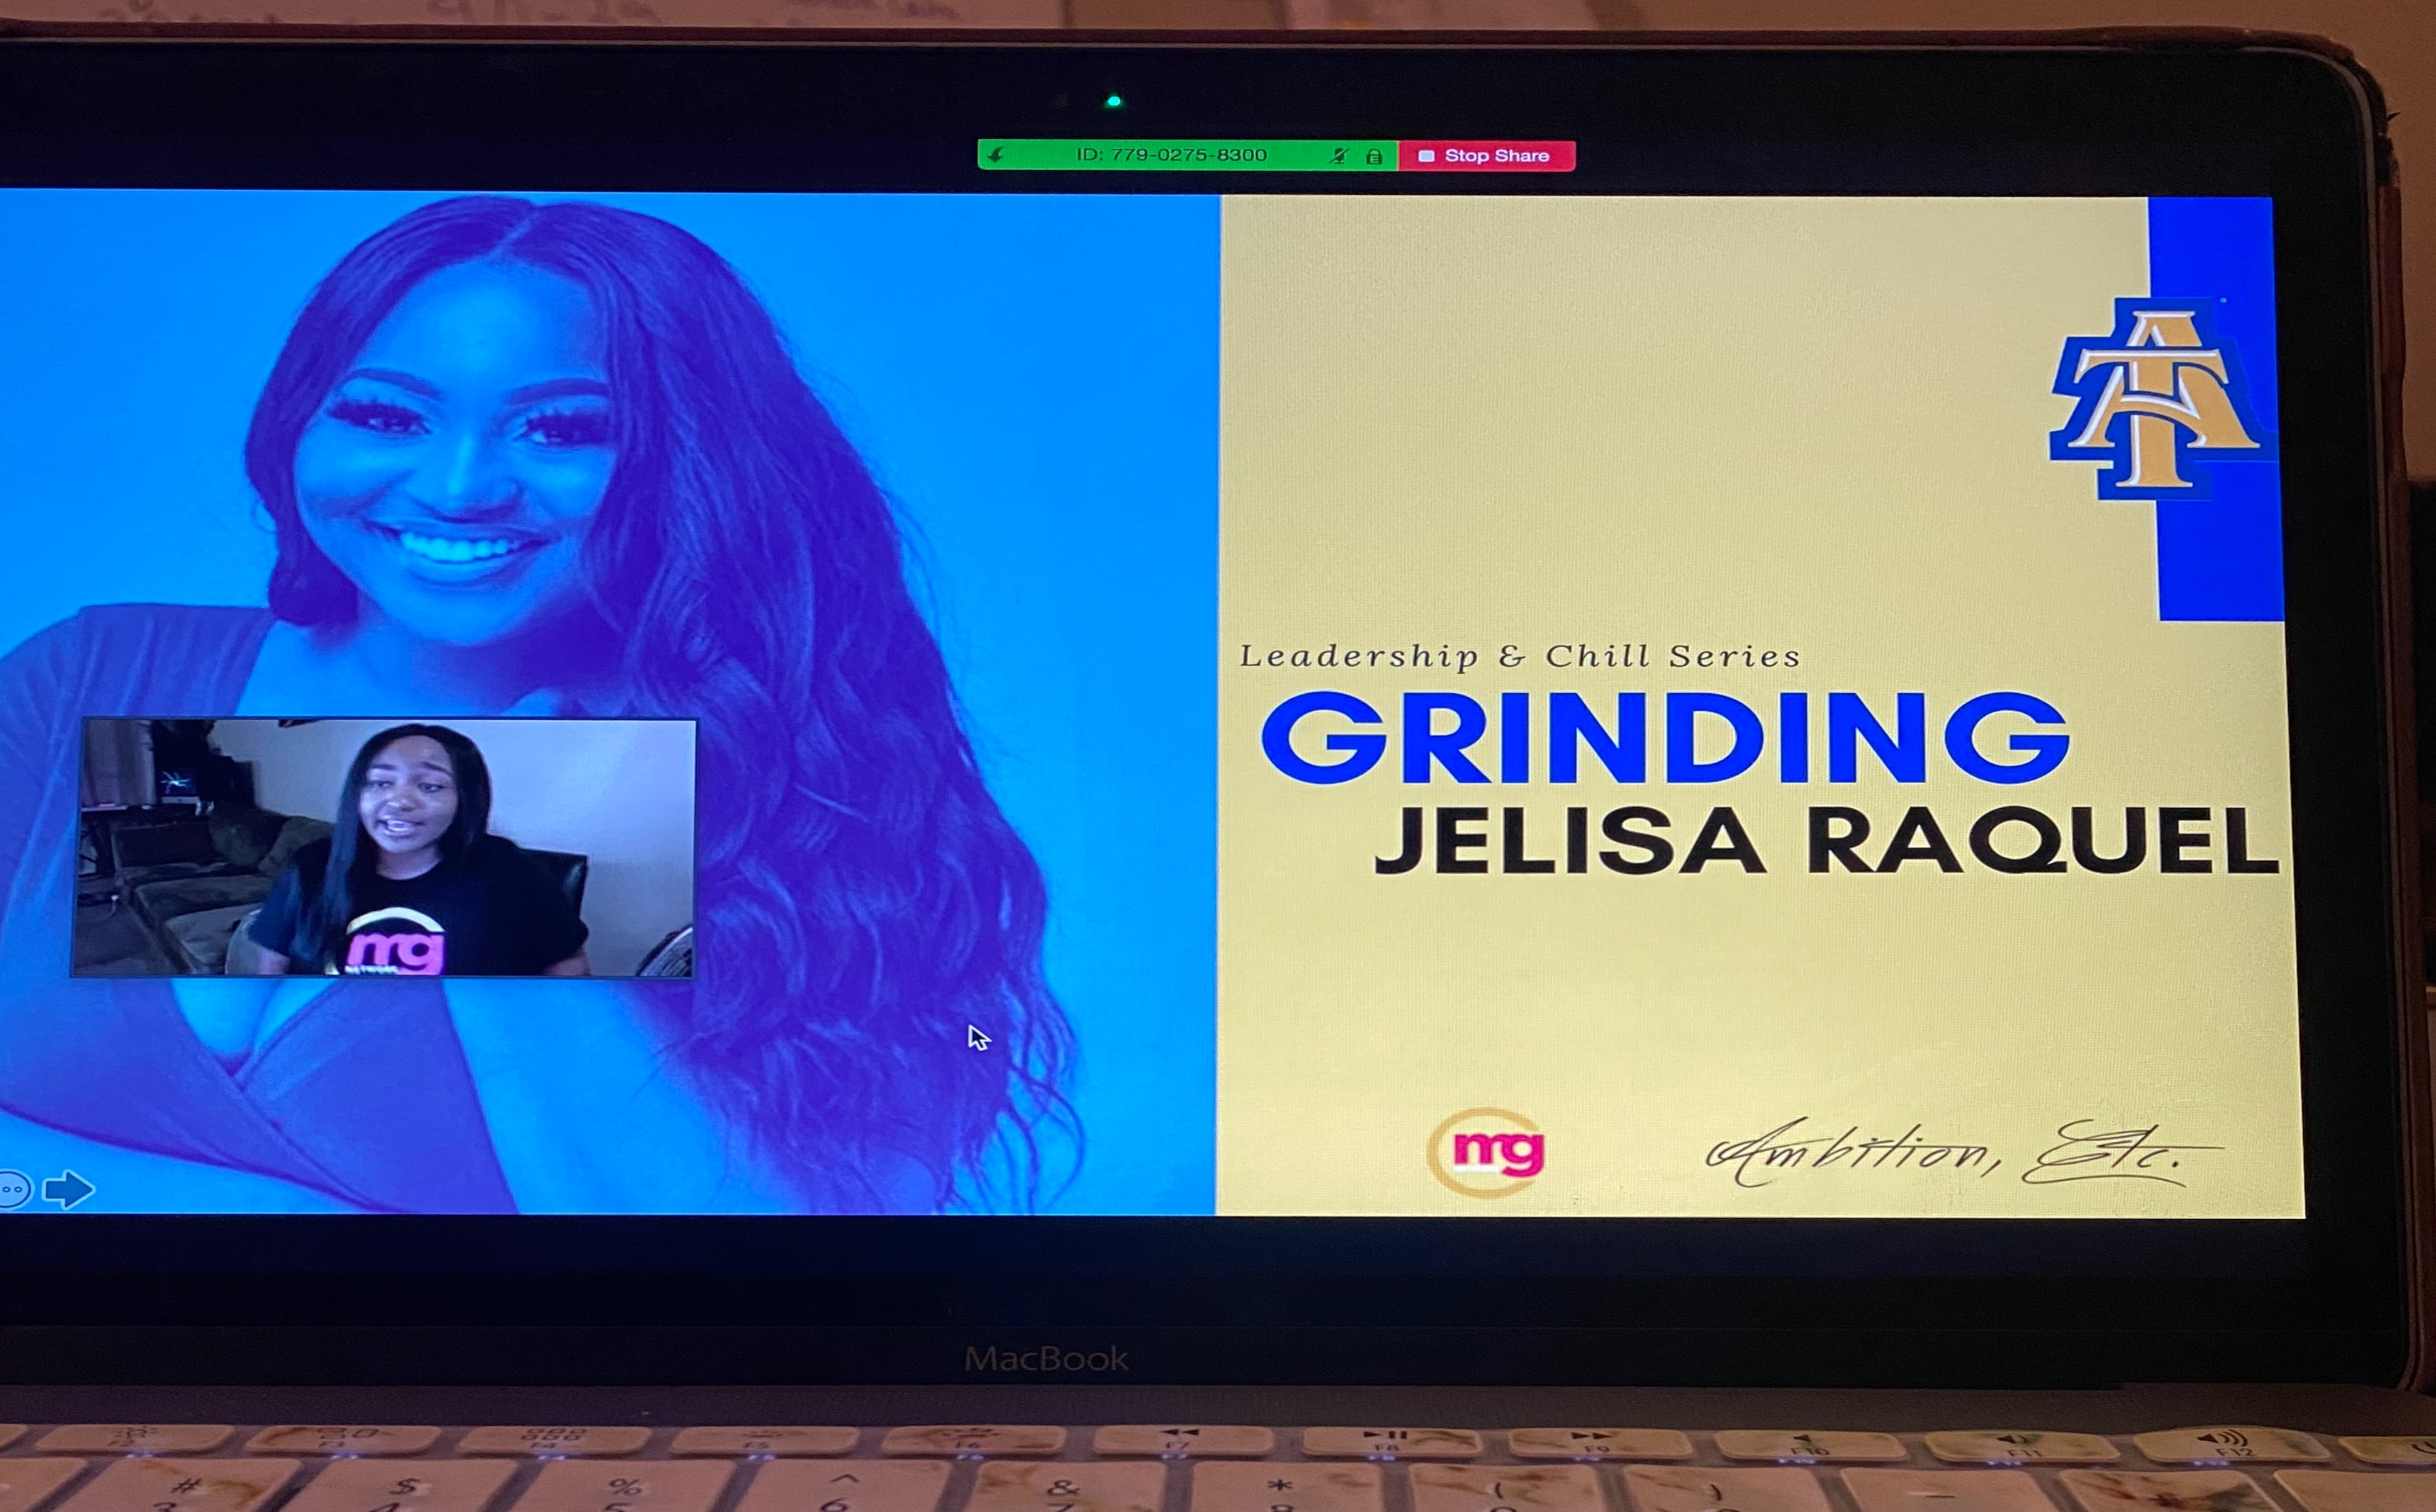 Grinding Event with Jelisa Raquel